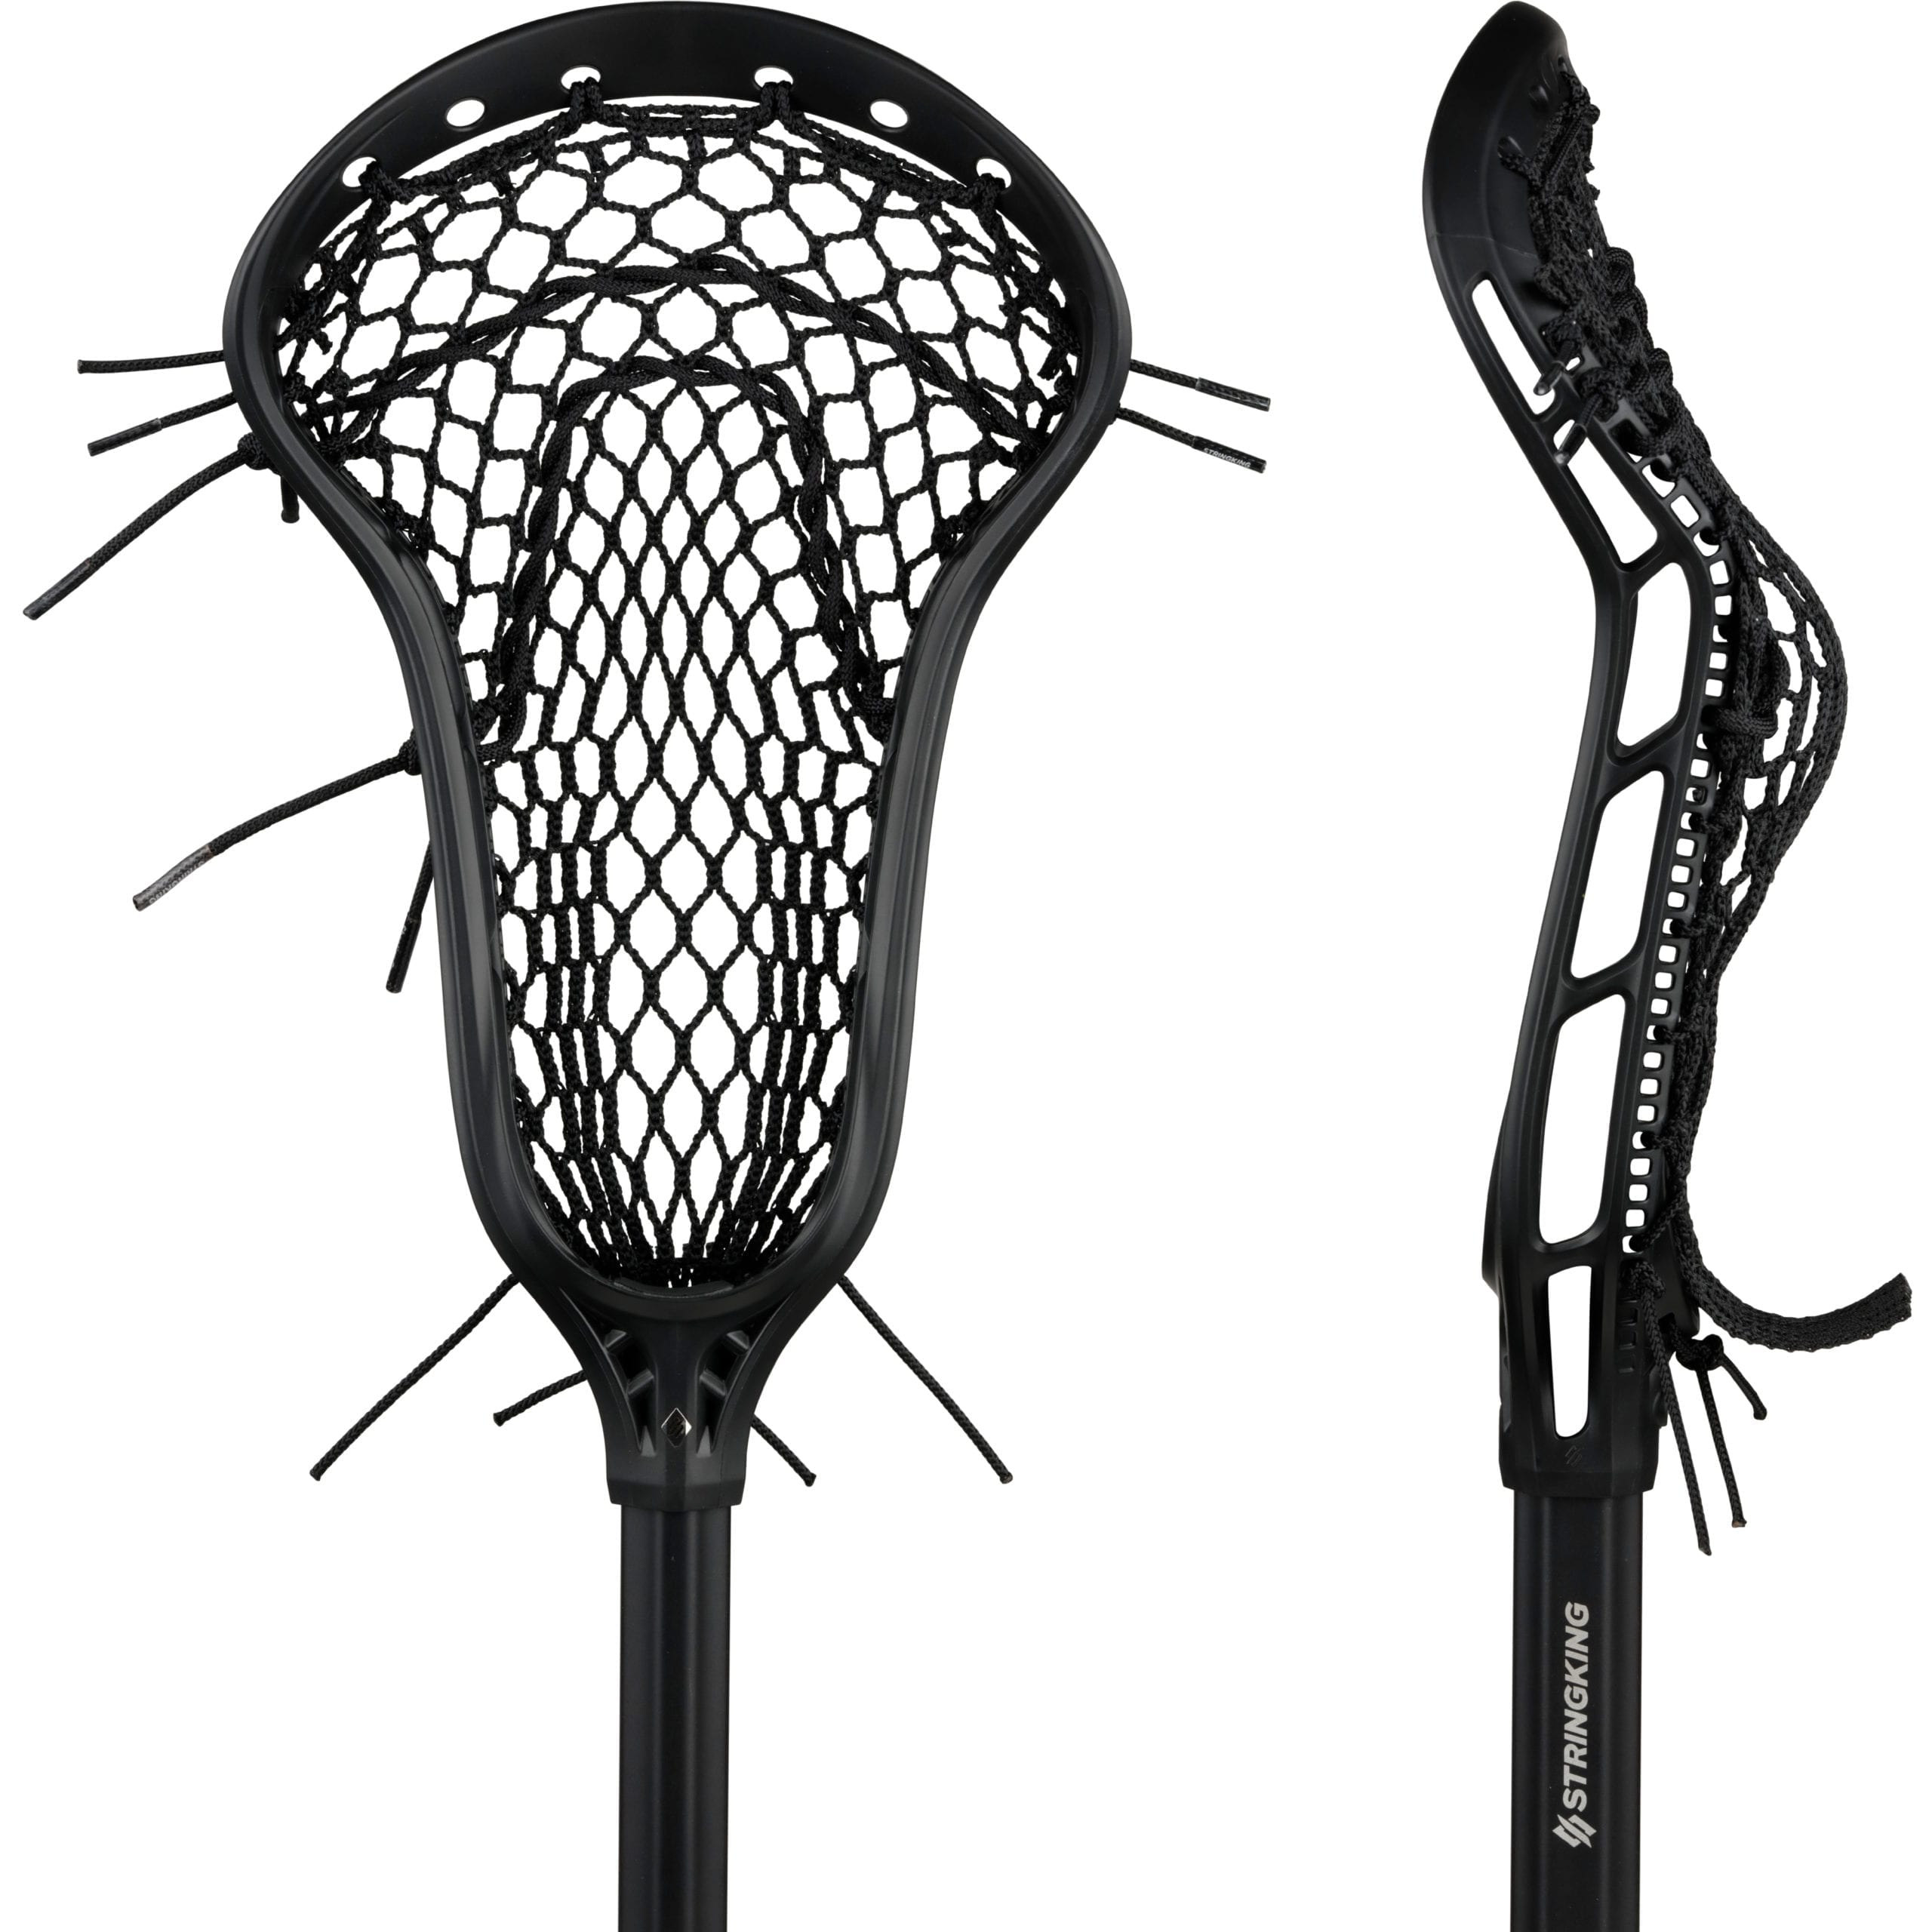 StringKing-Womens-Complete2Pro-Midfield-Front-Side-Strung-Black4000-scaled-1.jpg